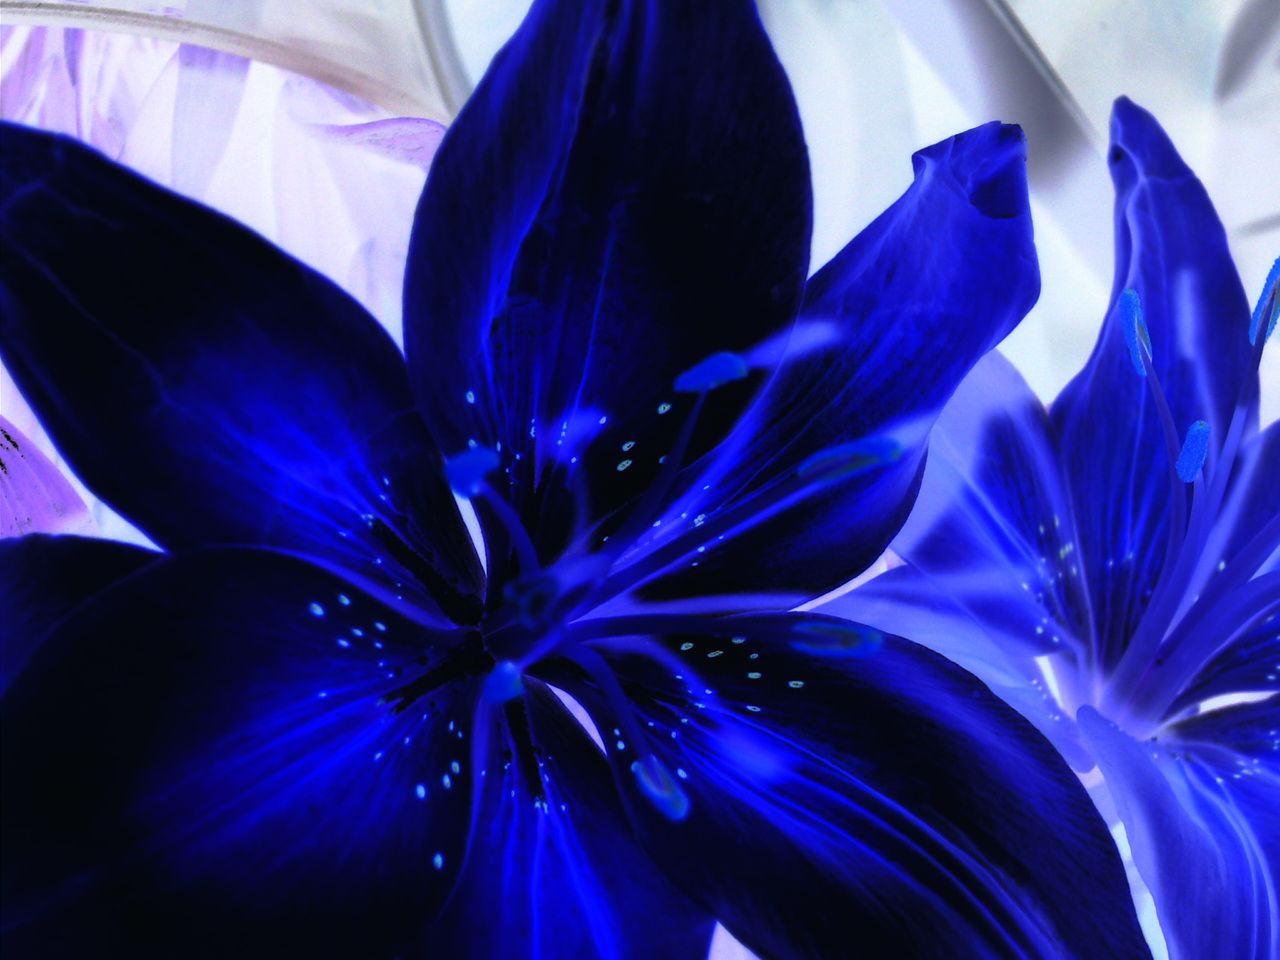 Lilies Bing Images Things I Like Pinterest Blue Blue